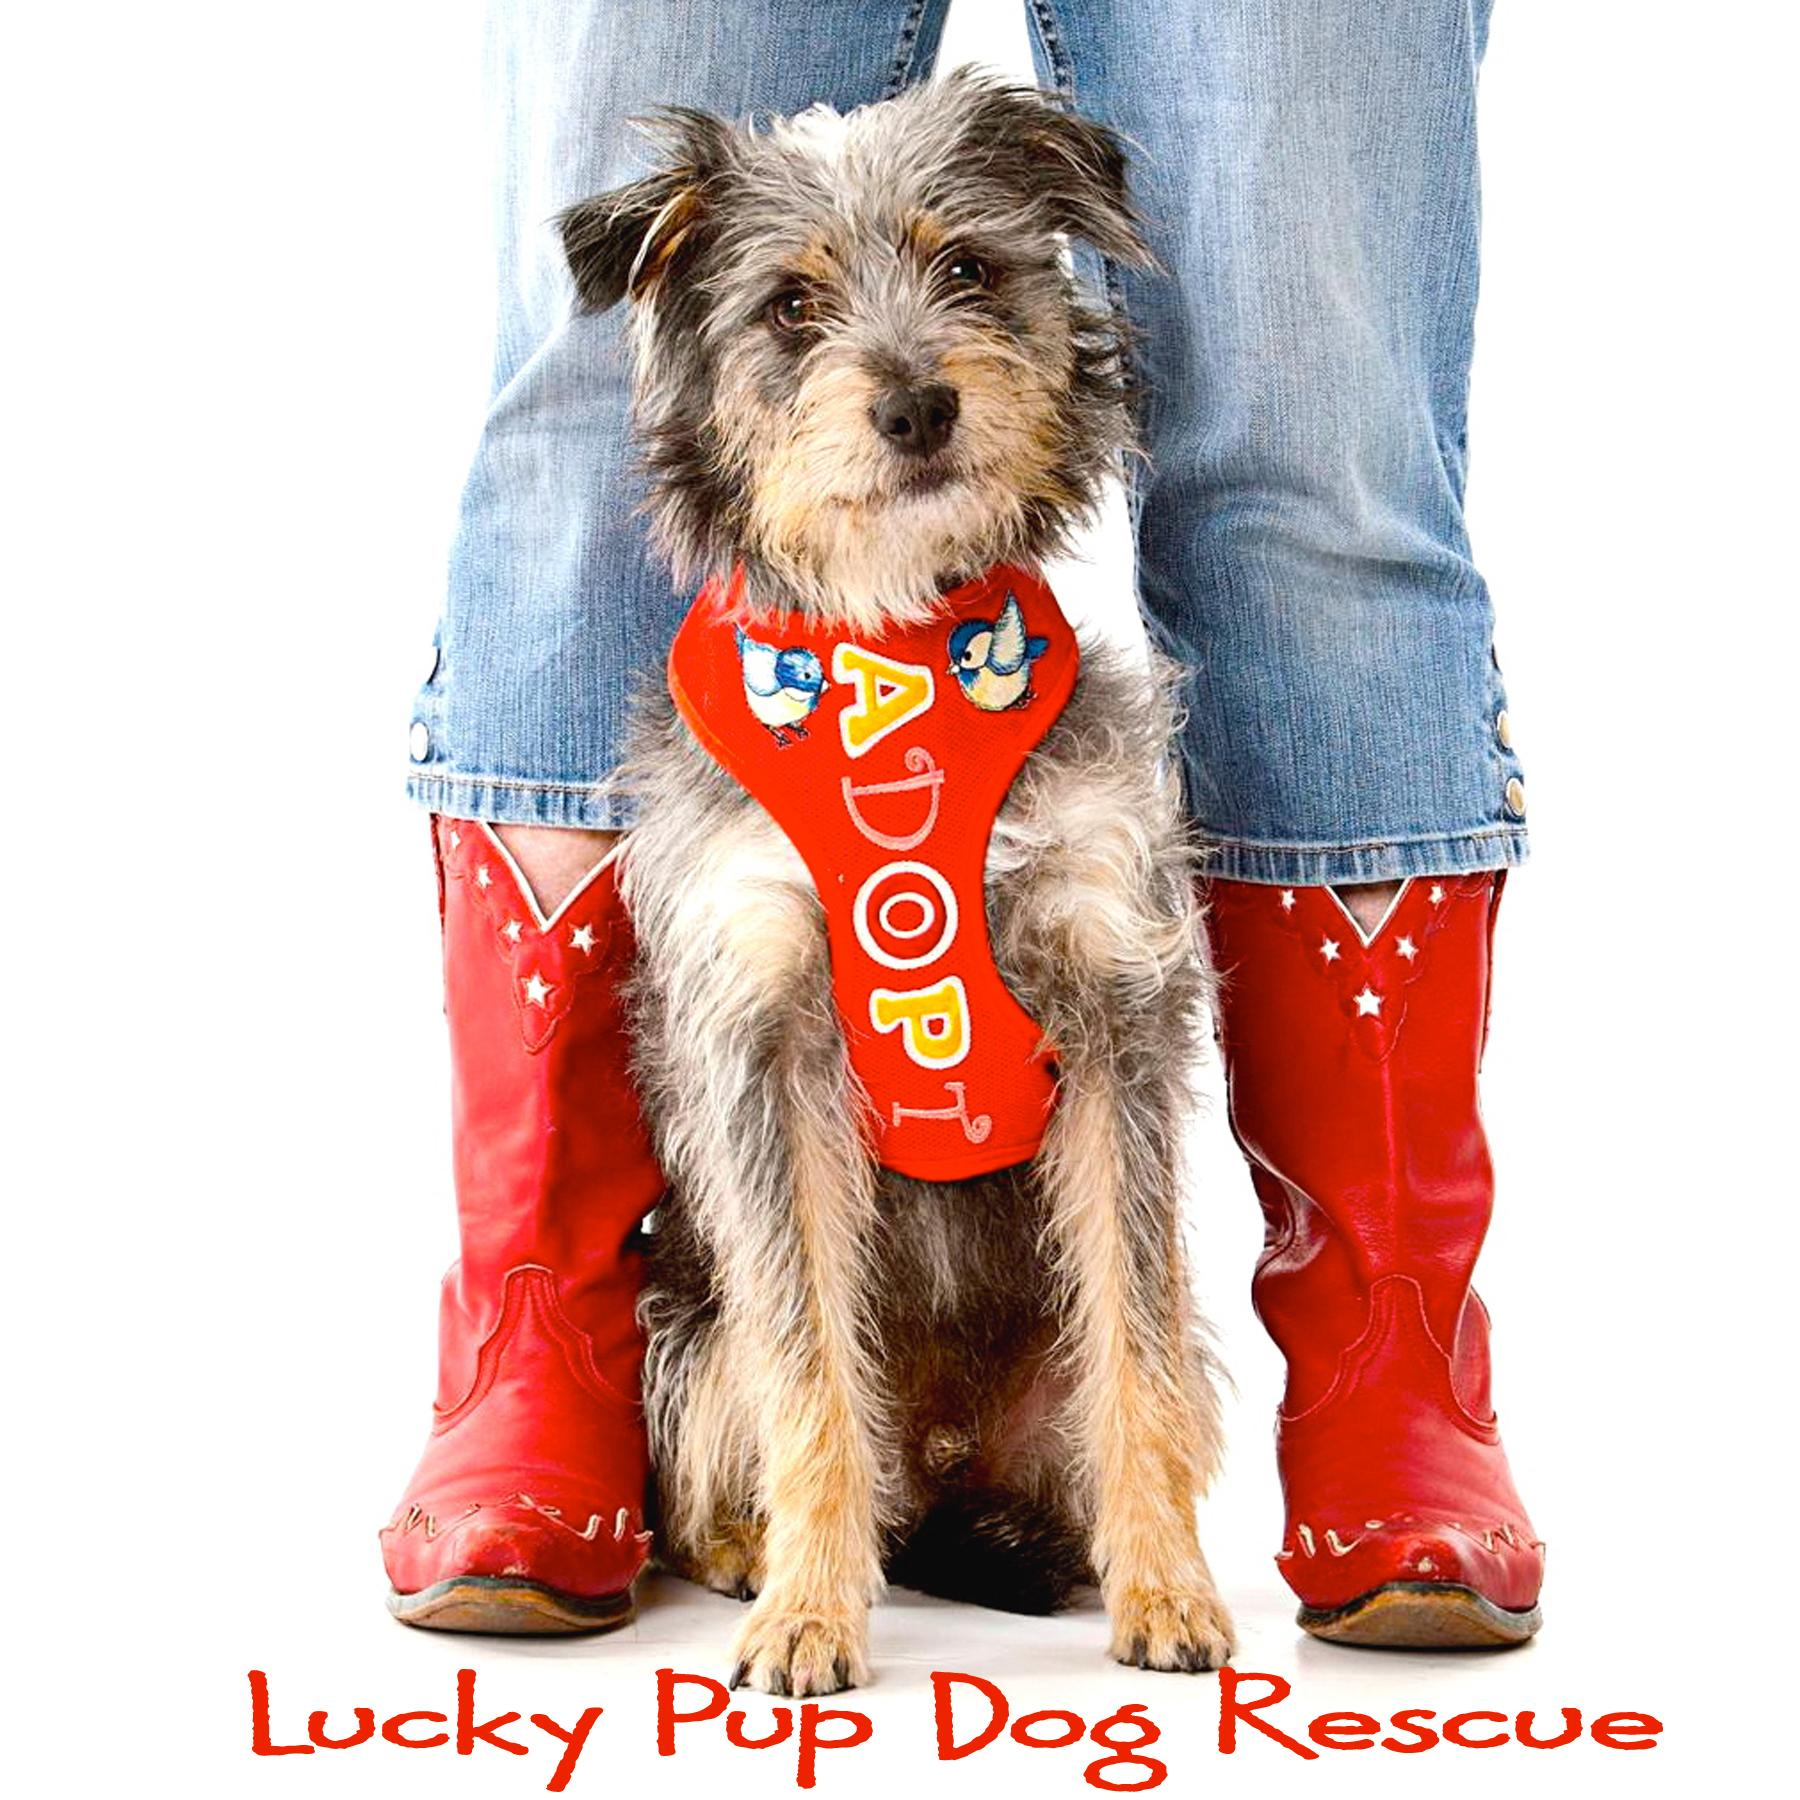 Lucky Pup Dog Rescue